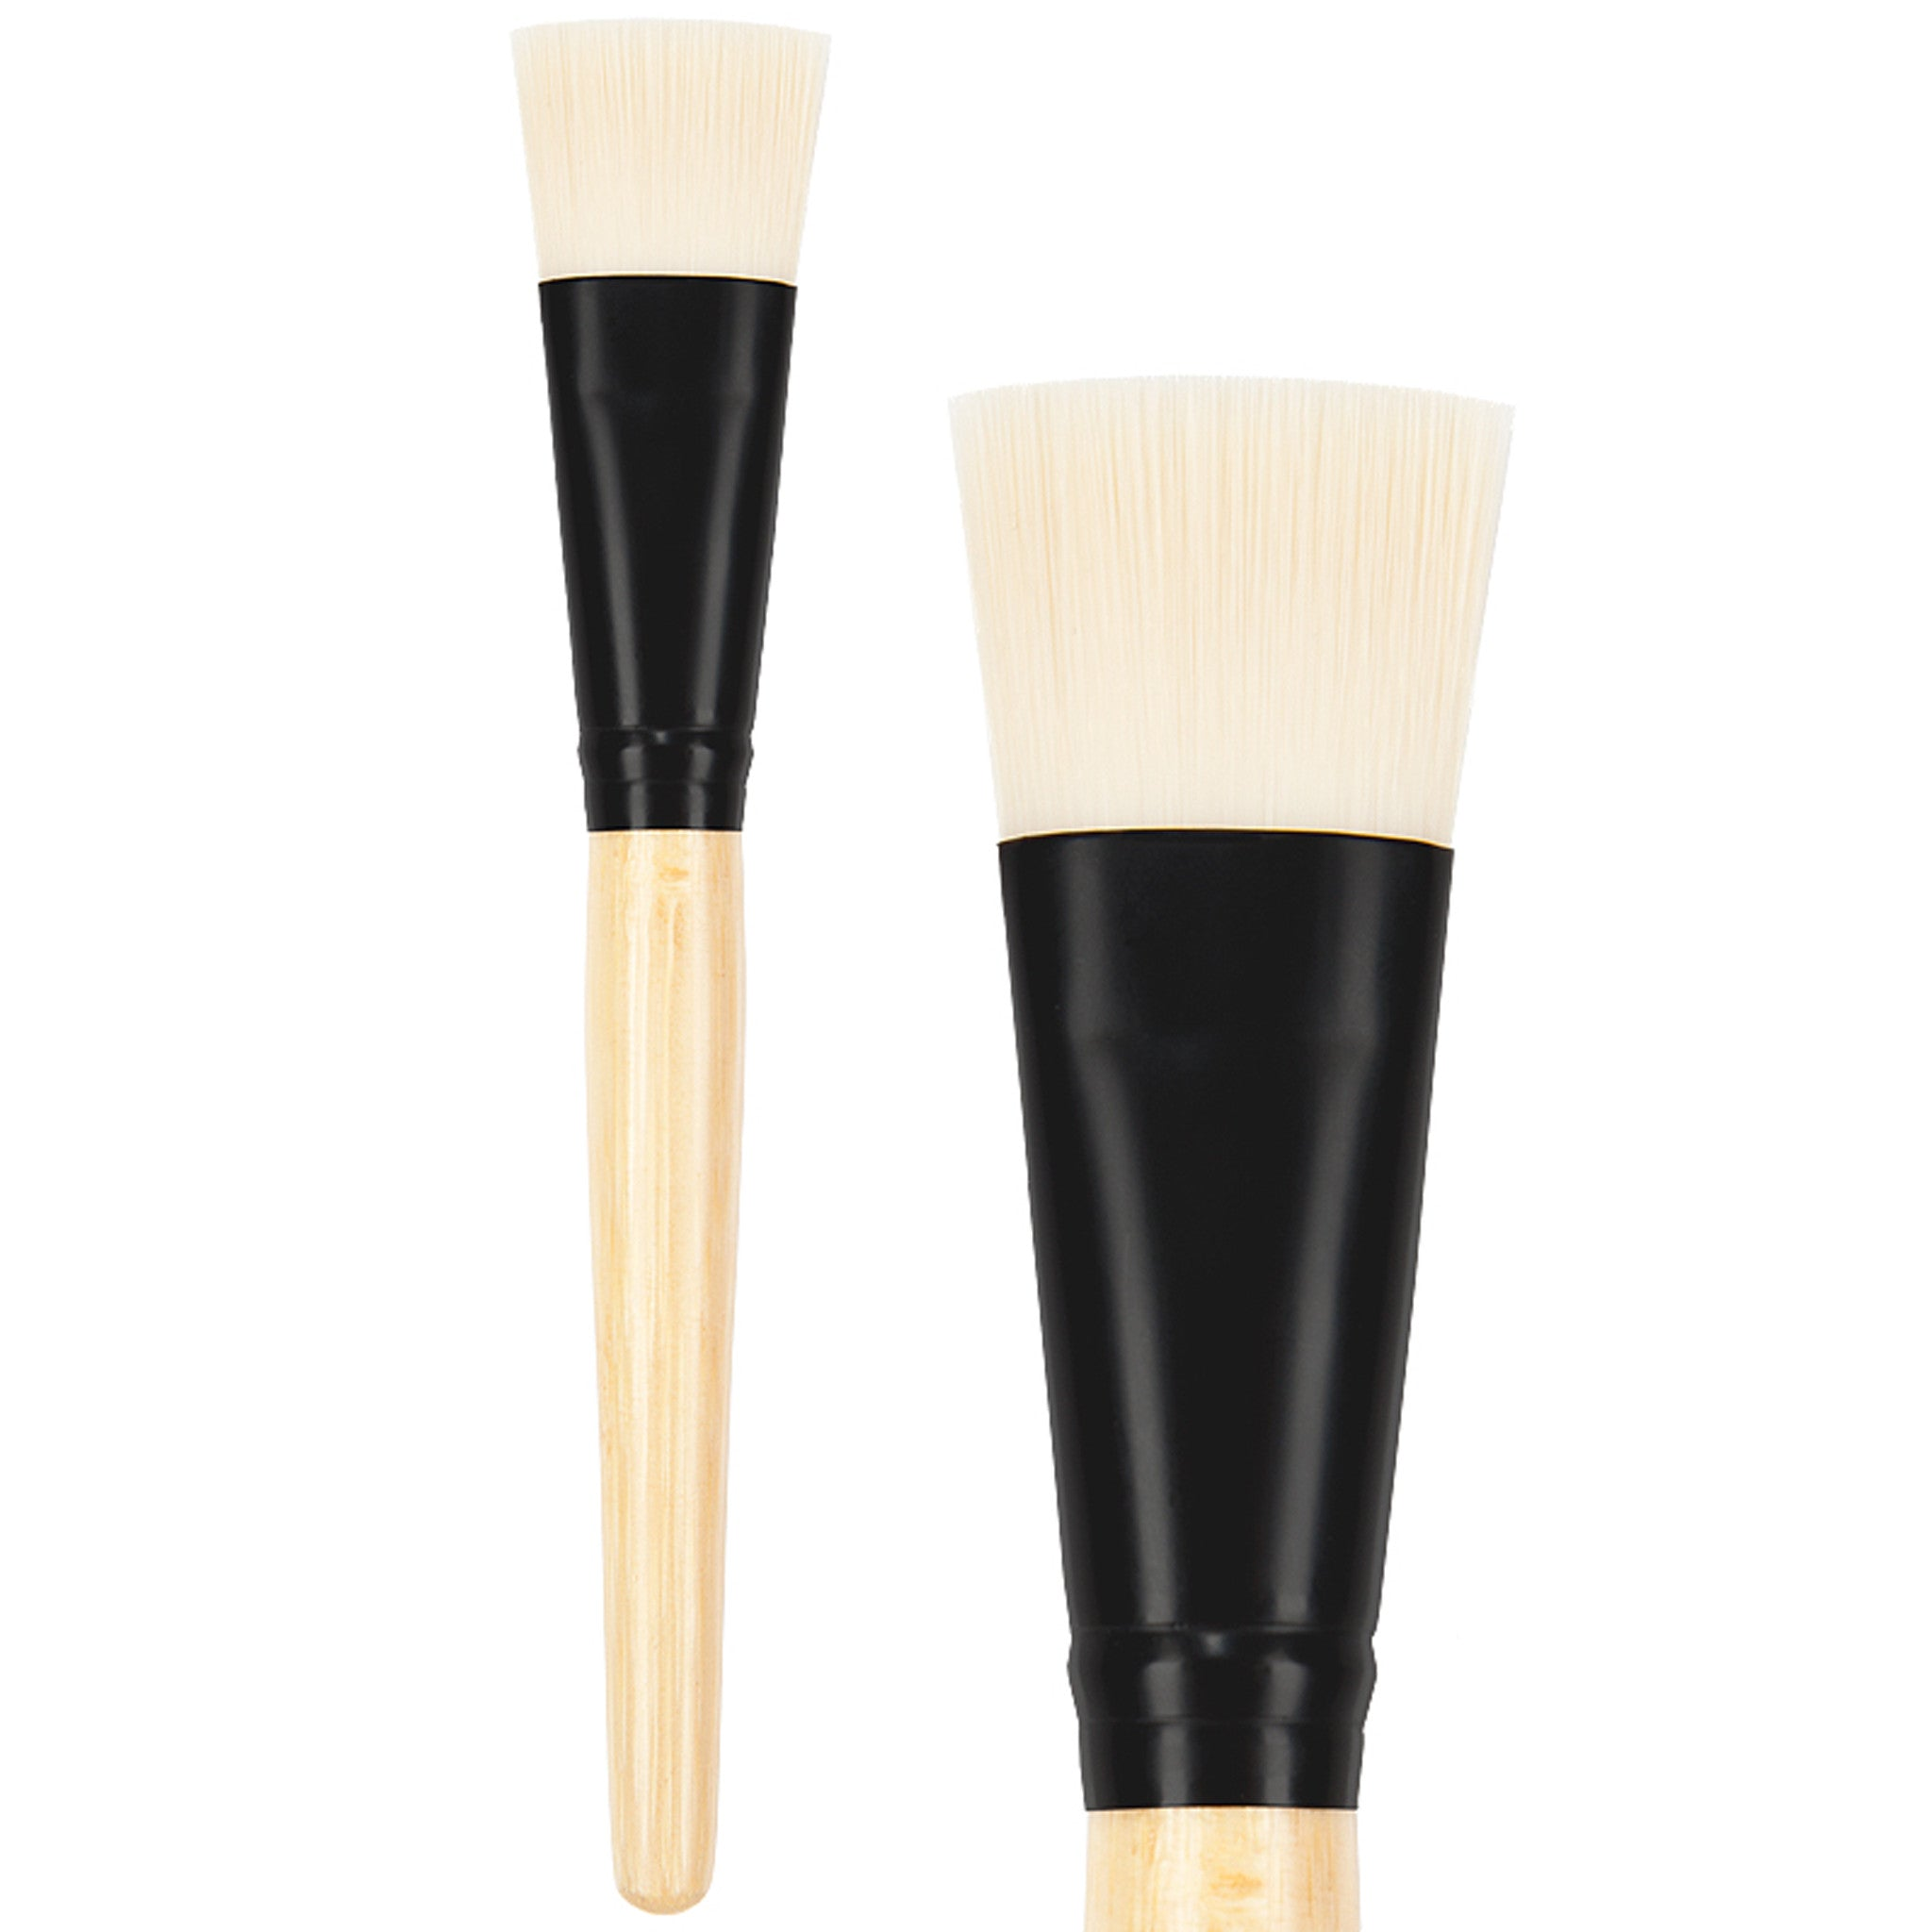 Coastal Scents coupon: Elite Flat Multipurpose Brush